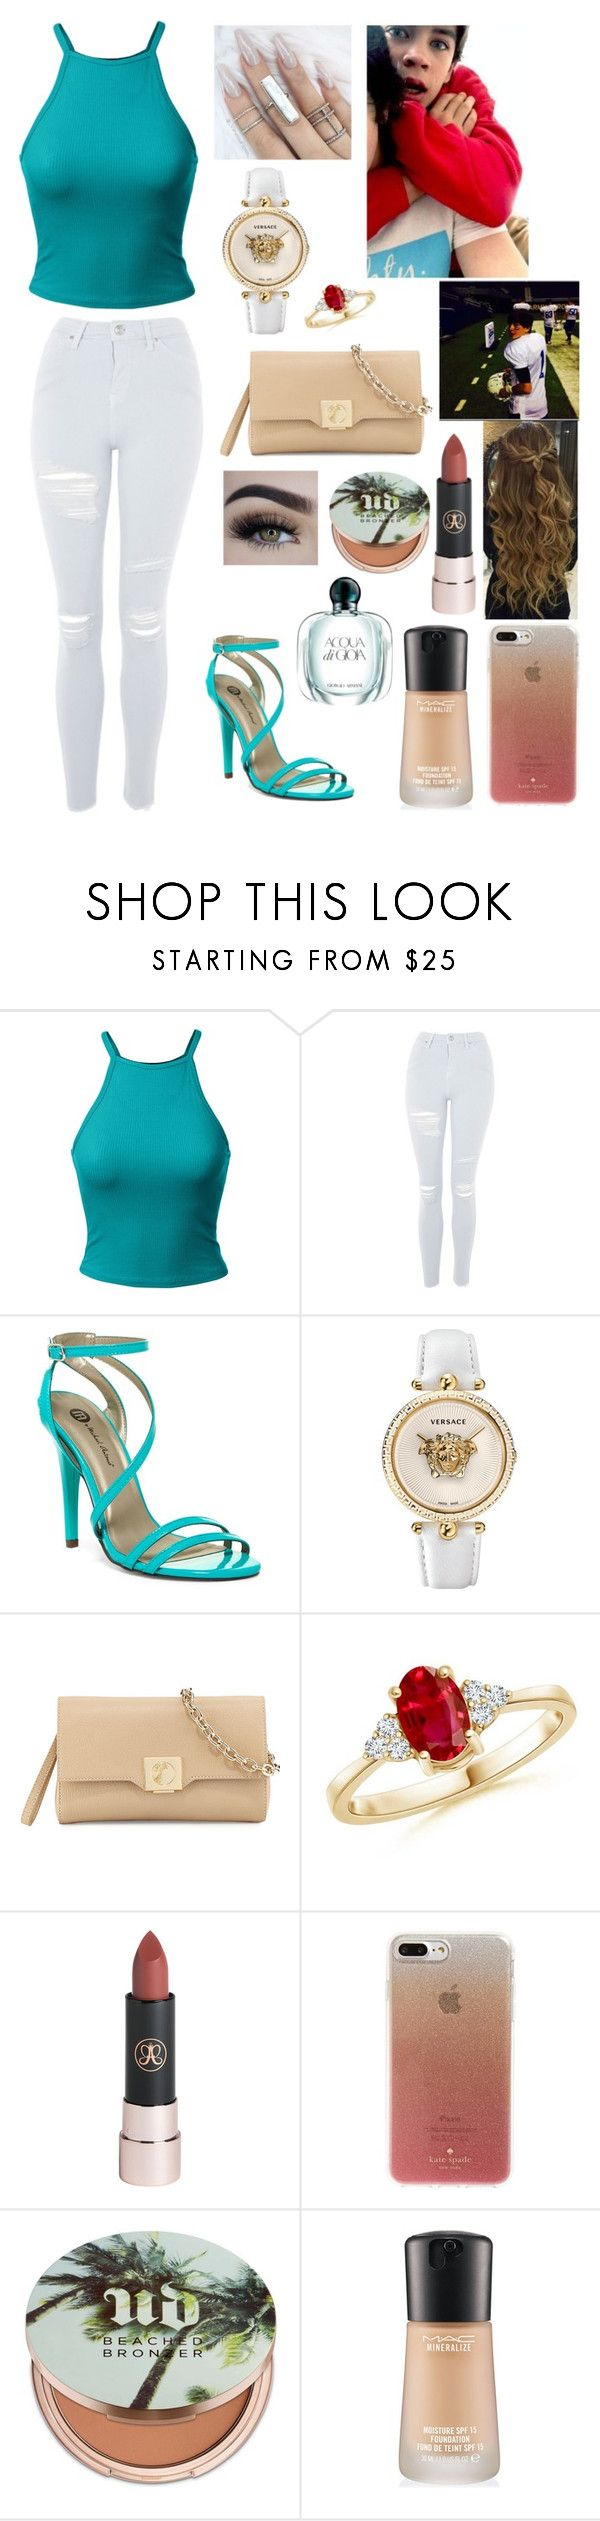 """Untitled #439"" by brie-karitsa-luciano on Polyvore featuring Topshop, Michael Antonio, Versace, Kate Spade, Urban Decay, MAC Cosmetics and Giorgio Armani"